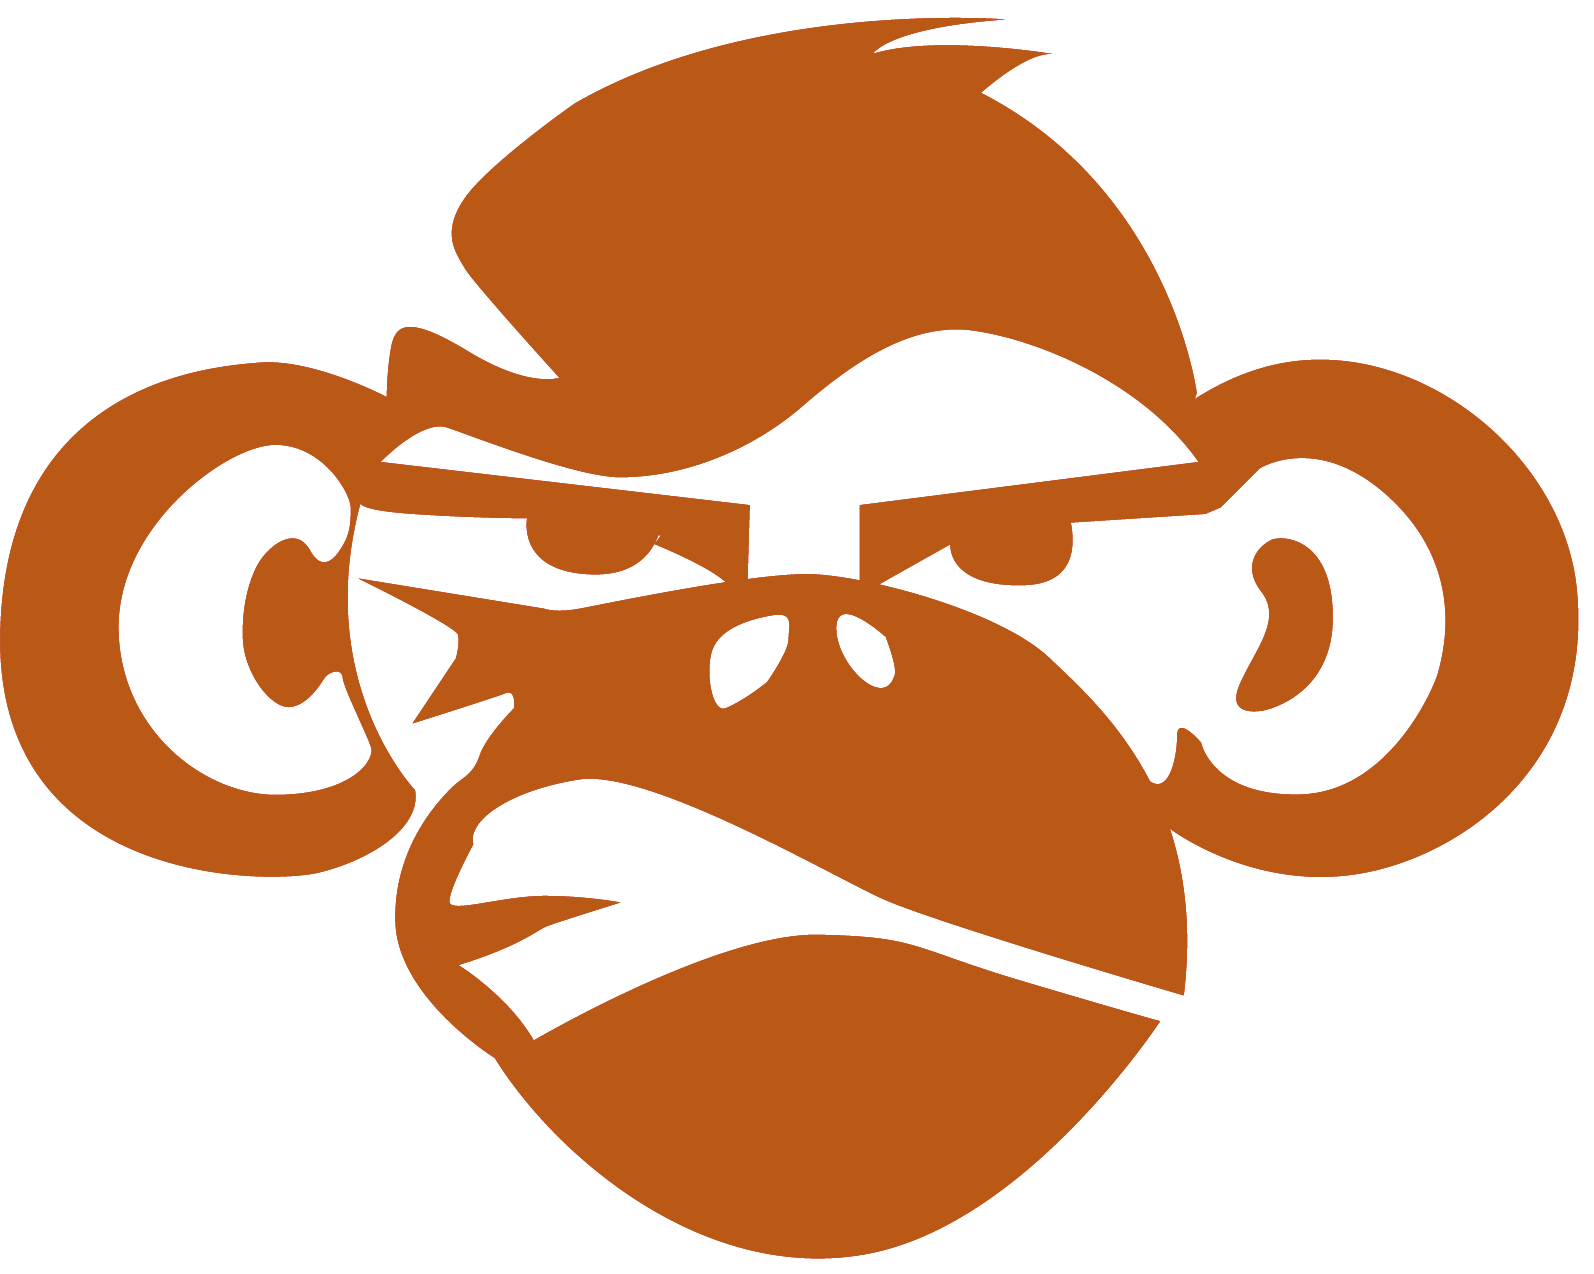 Monkey Face Png image #26154